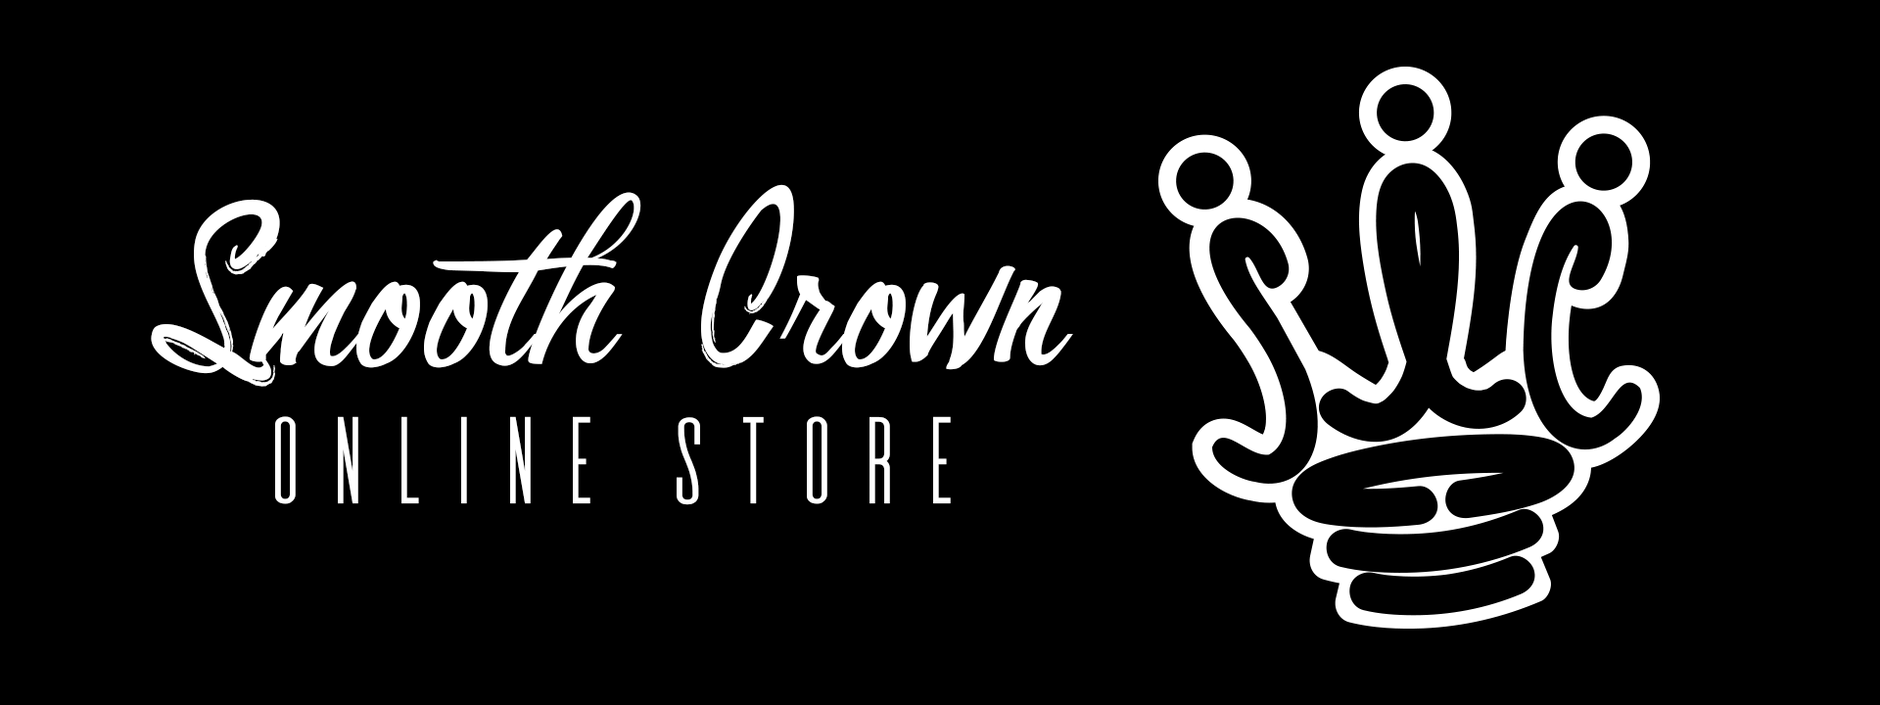 Smooth Crown